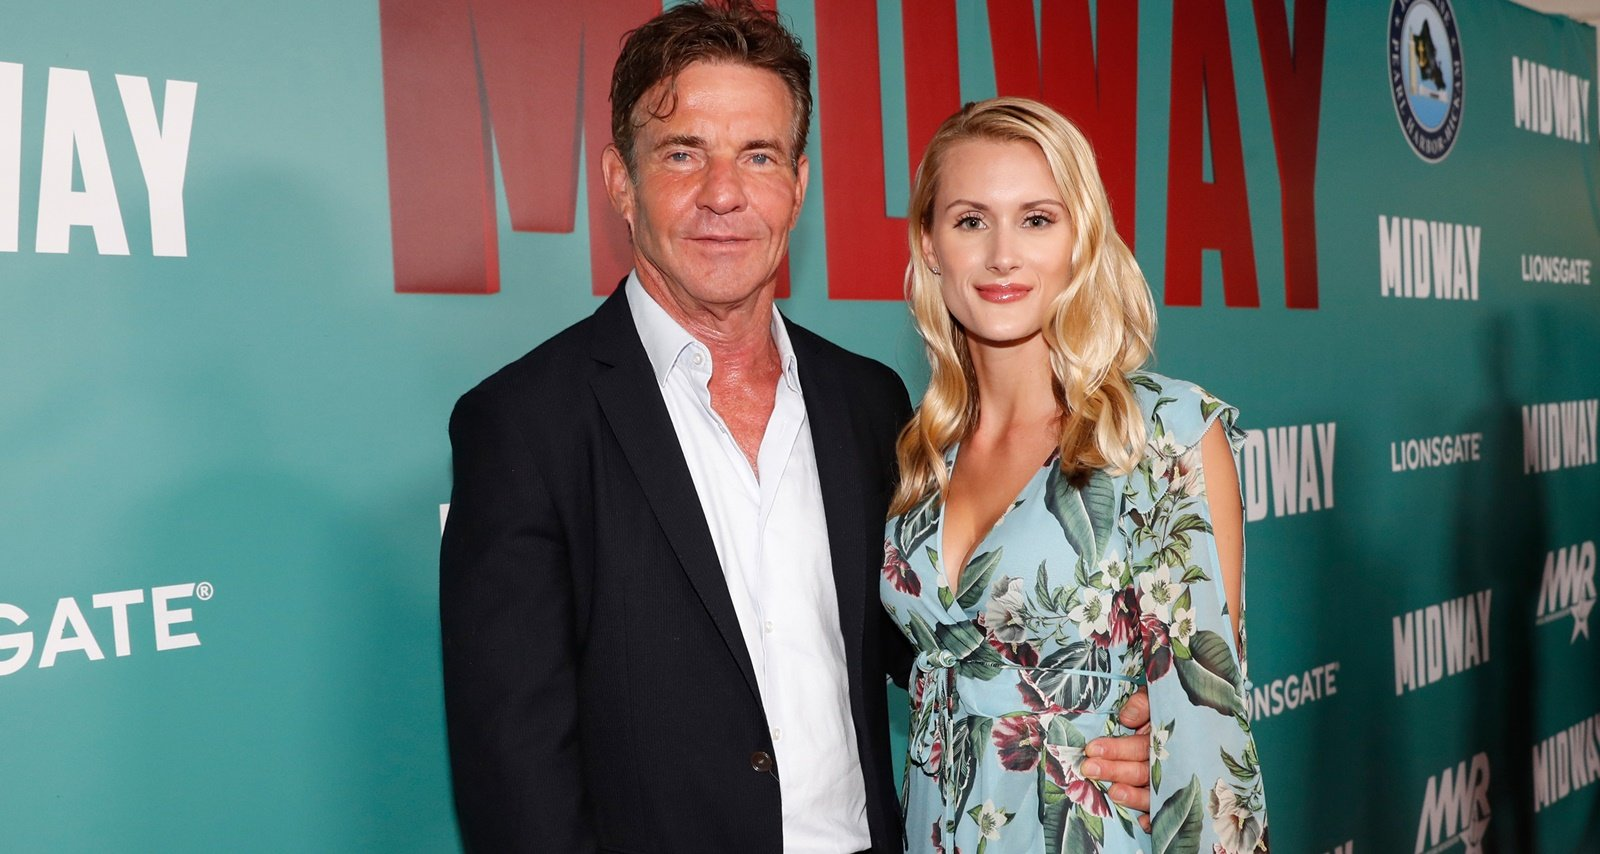 Laura Savoie Wiki, Age, Education & Facts About Dennis Quaid's Wife